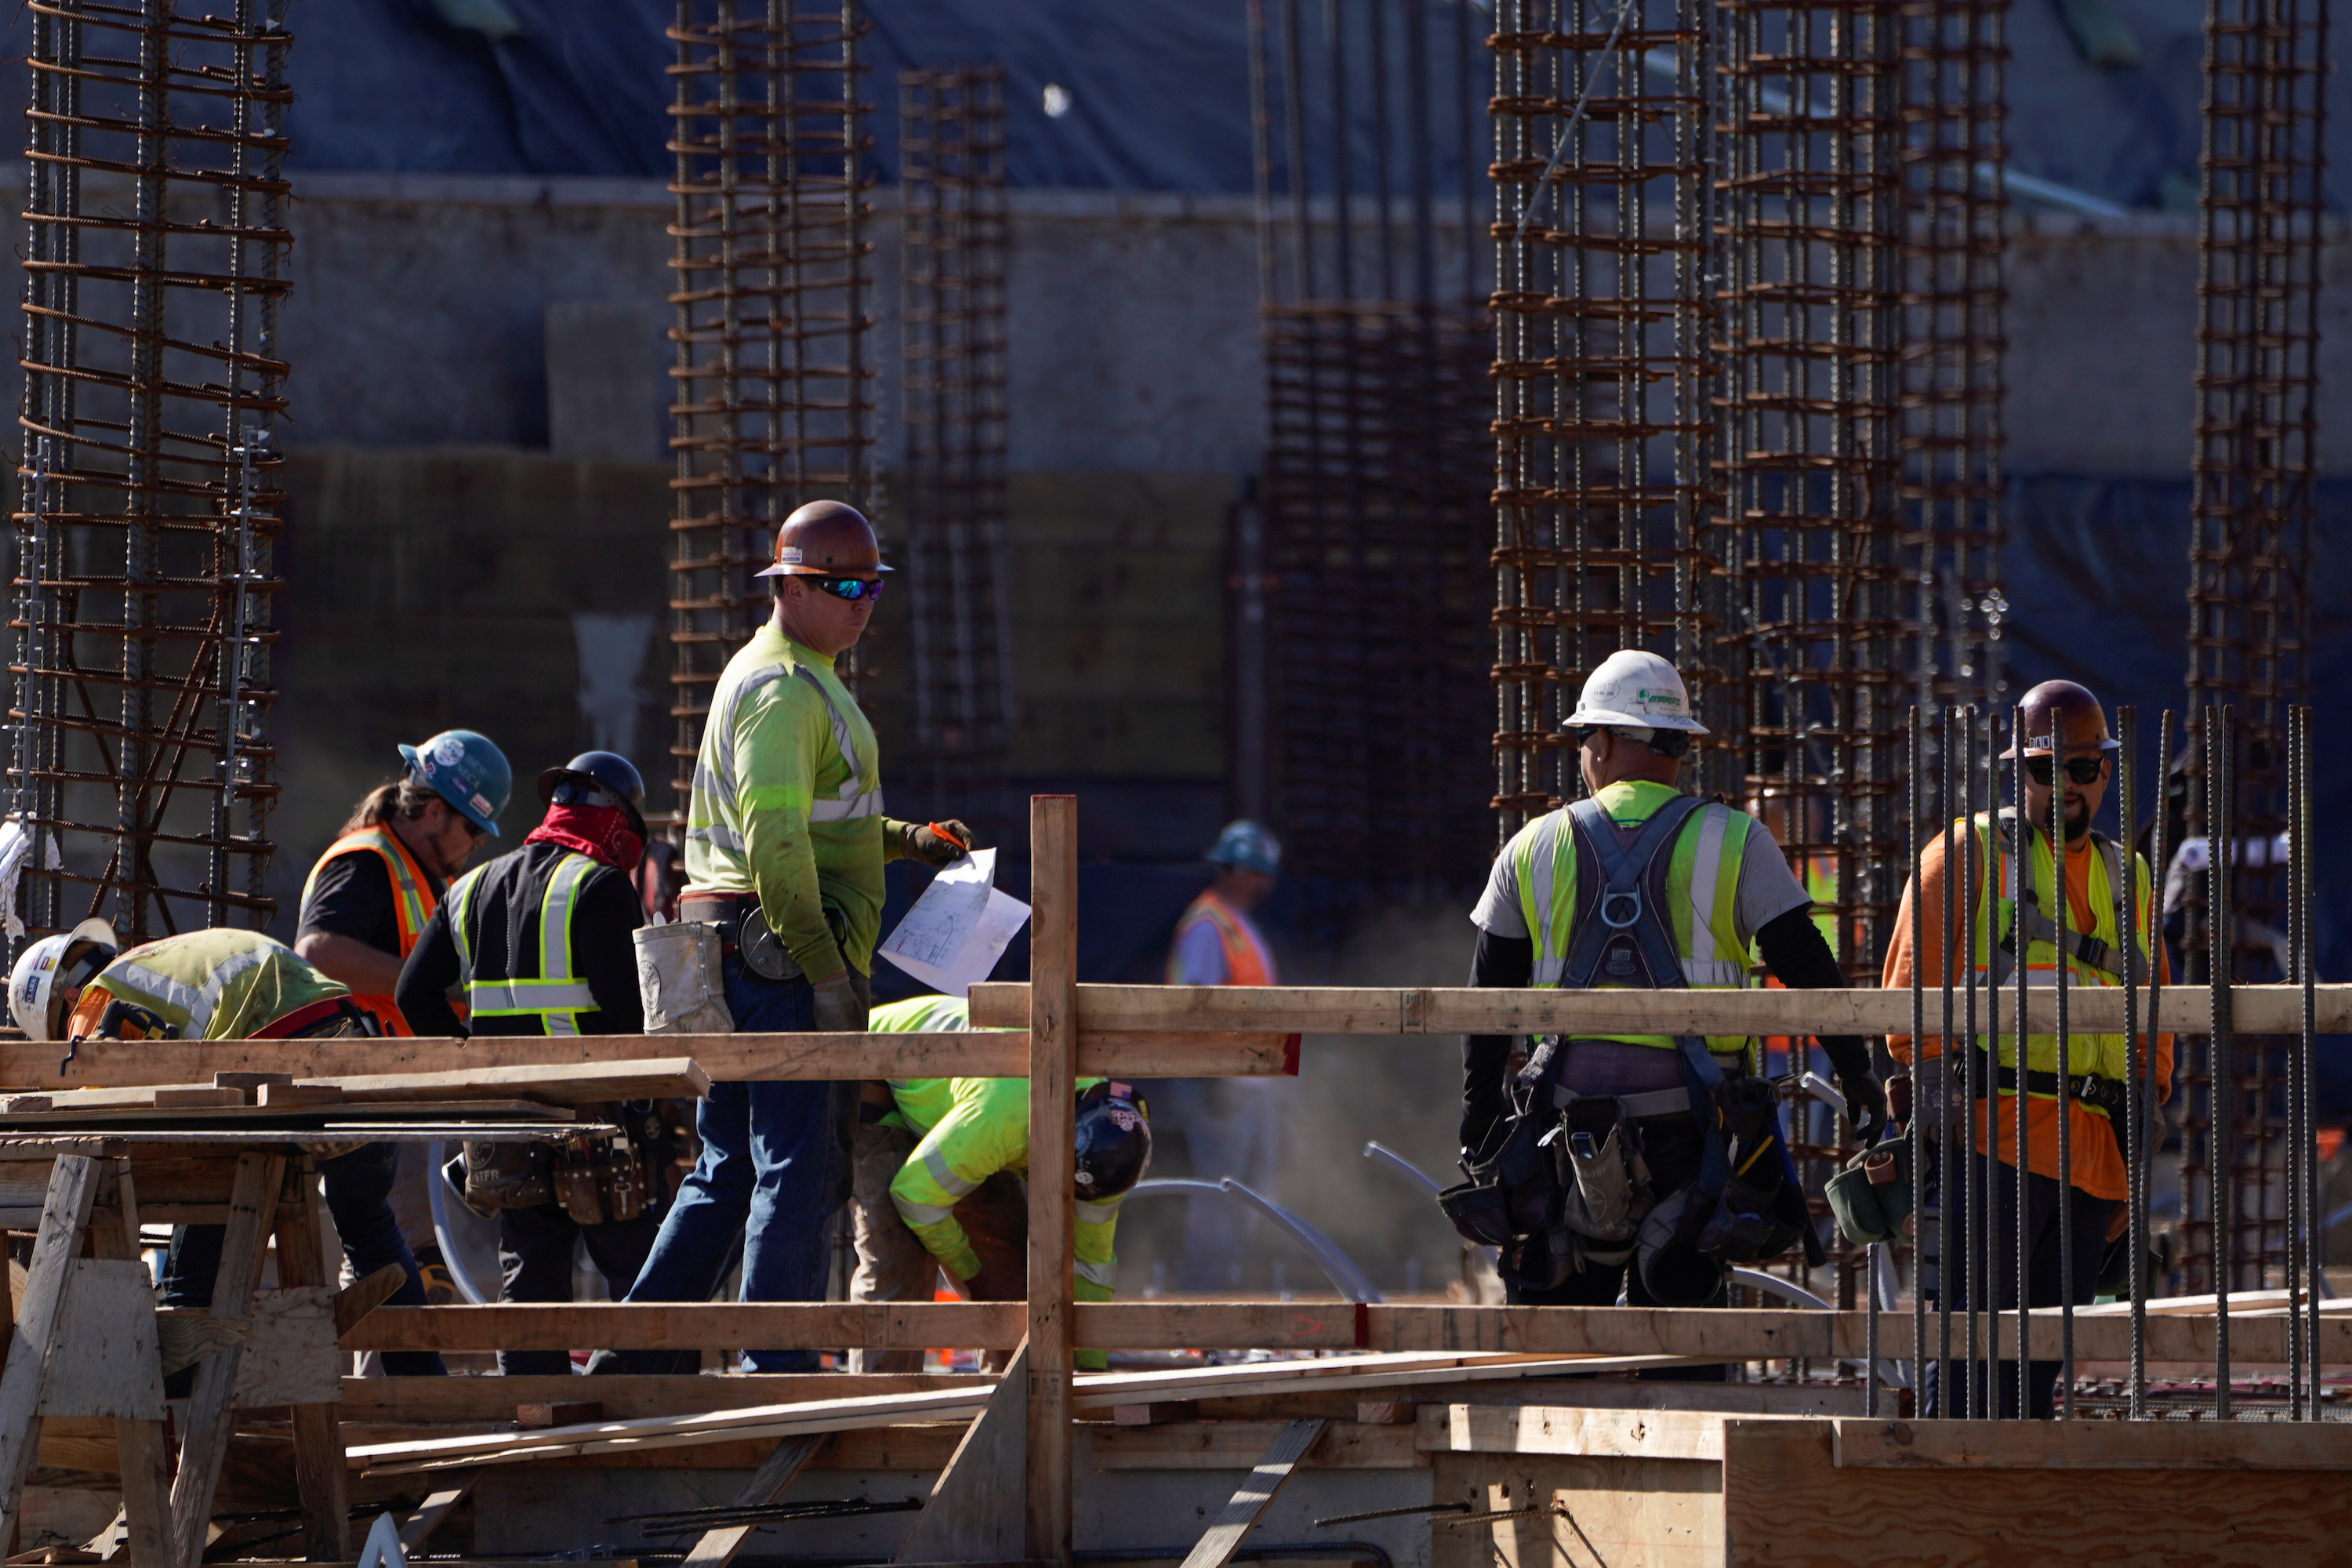 Lower Likelihood of Recession for US Economy: Expert Survey